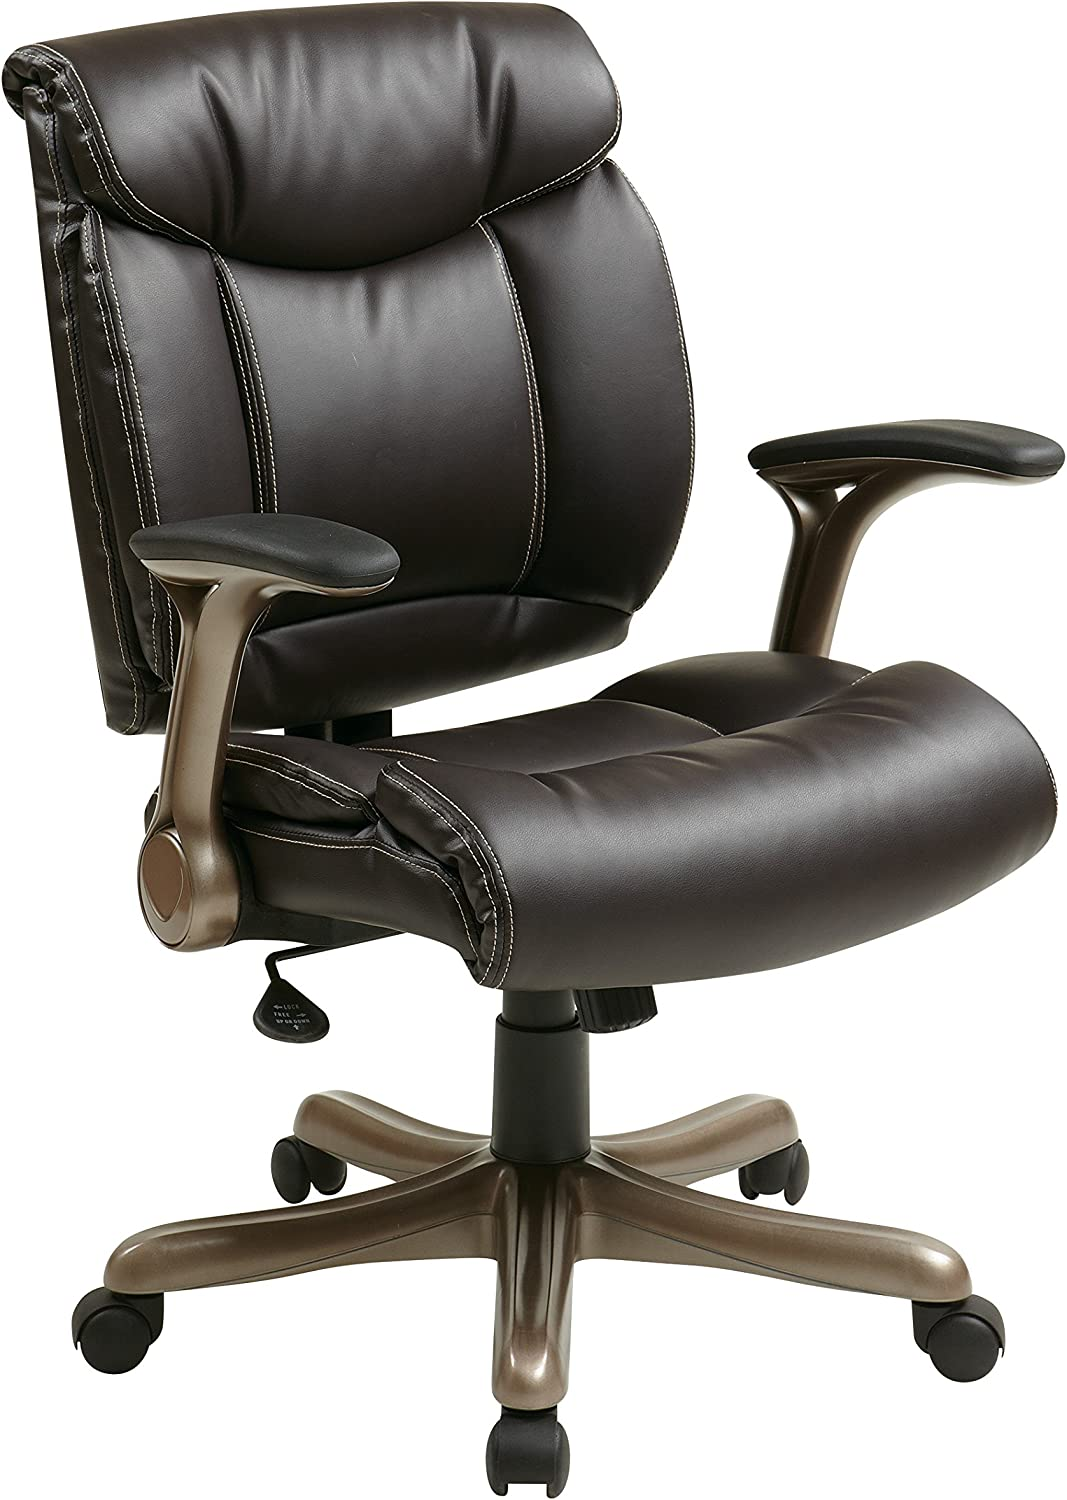 Office Star Bonded Leather Seat and Back with 2-Tone Stitching, Padded Flip Arms Executives Chair with Cocoa Finish Accents, Espresso